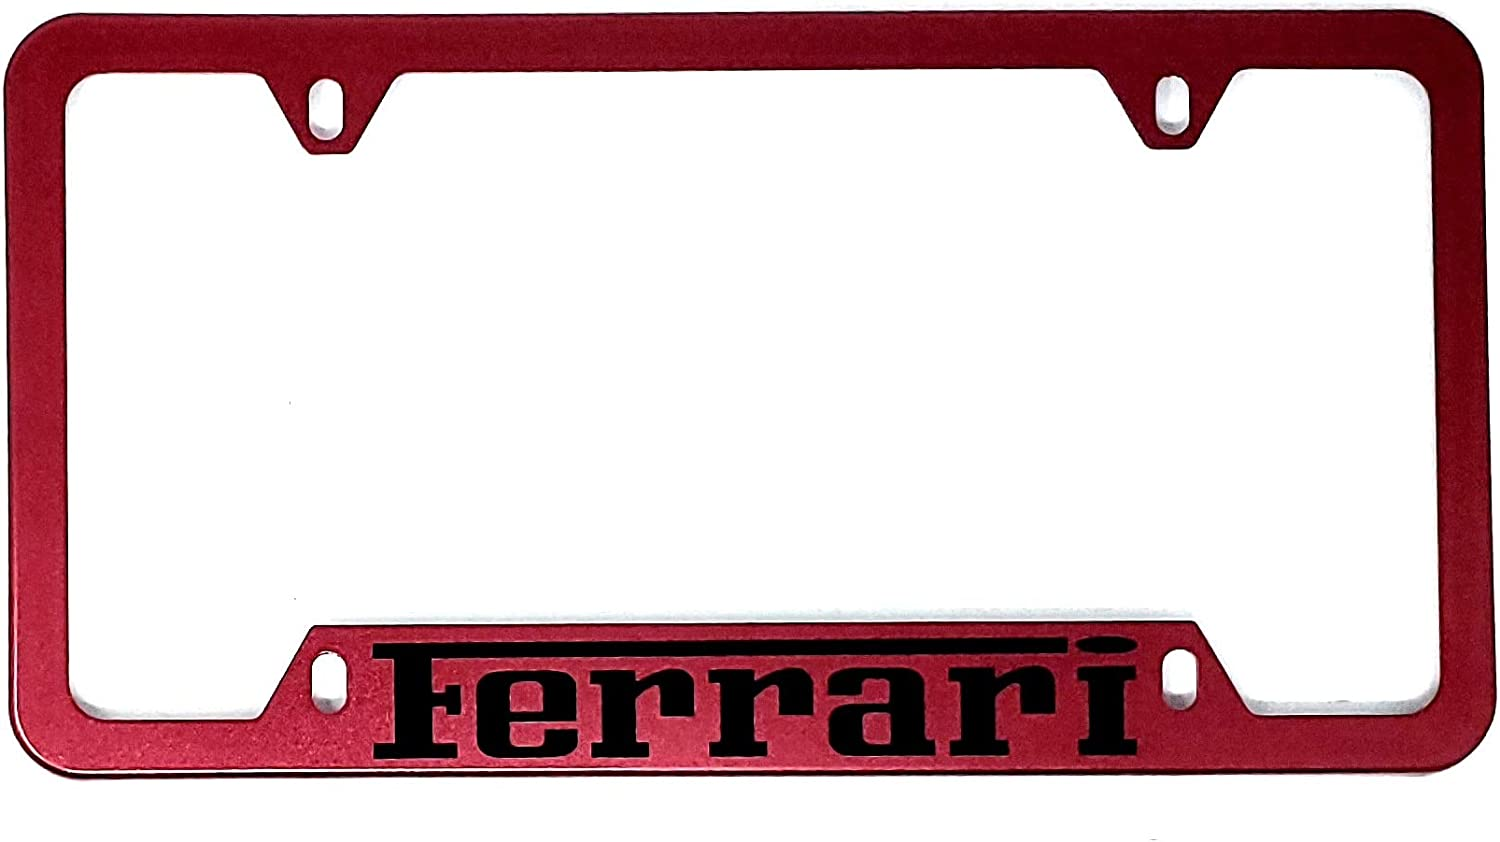 FOR FERRARI License Plate Cover Holder Frame Badge Stickers Decals with Strong 3M Includes instructions MEASURE Before Purchase Fitment Top Quality fit For FXX 360 458 488 GTO GTB LaFerrari etc AMDCO RED pack of 1